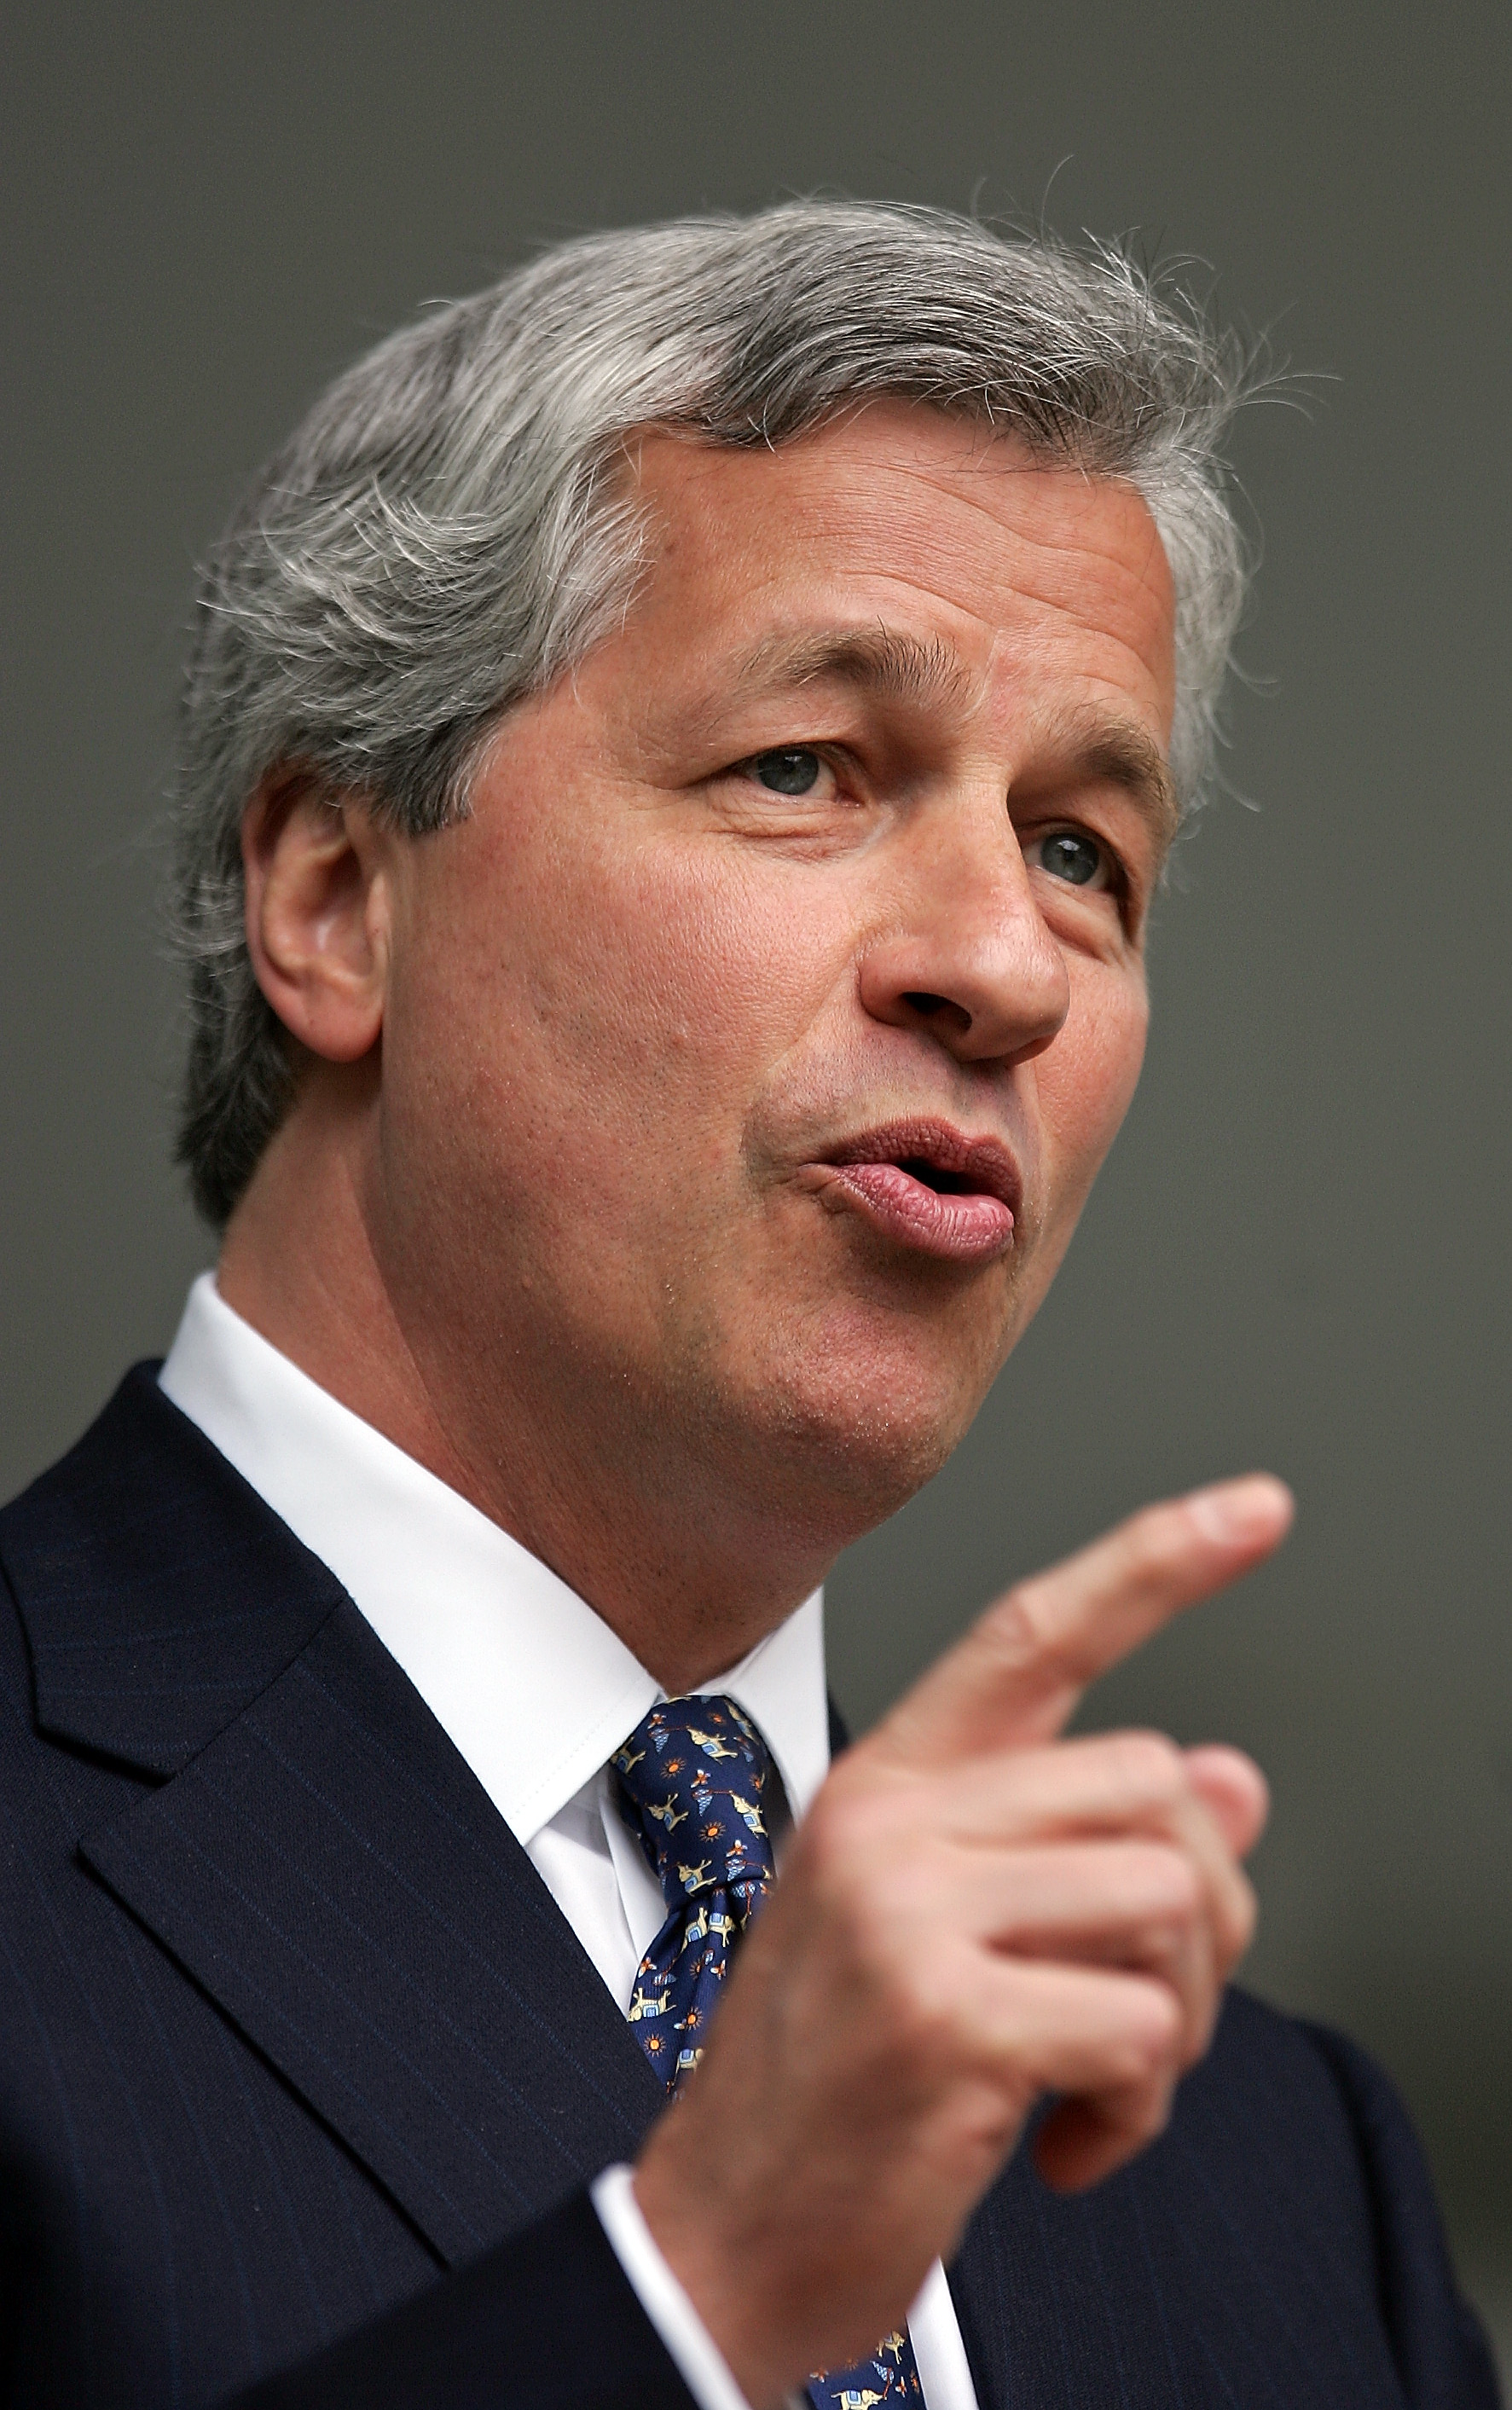 Jamie Dimon runs JPMorgan Chase the largest bank in the US in terms of assets He began his finance career at American Express in 1982 and later helped build the